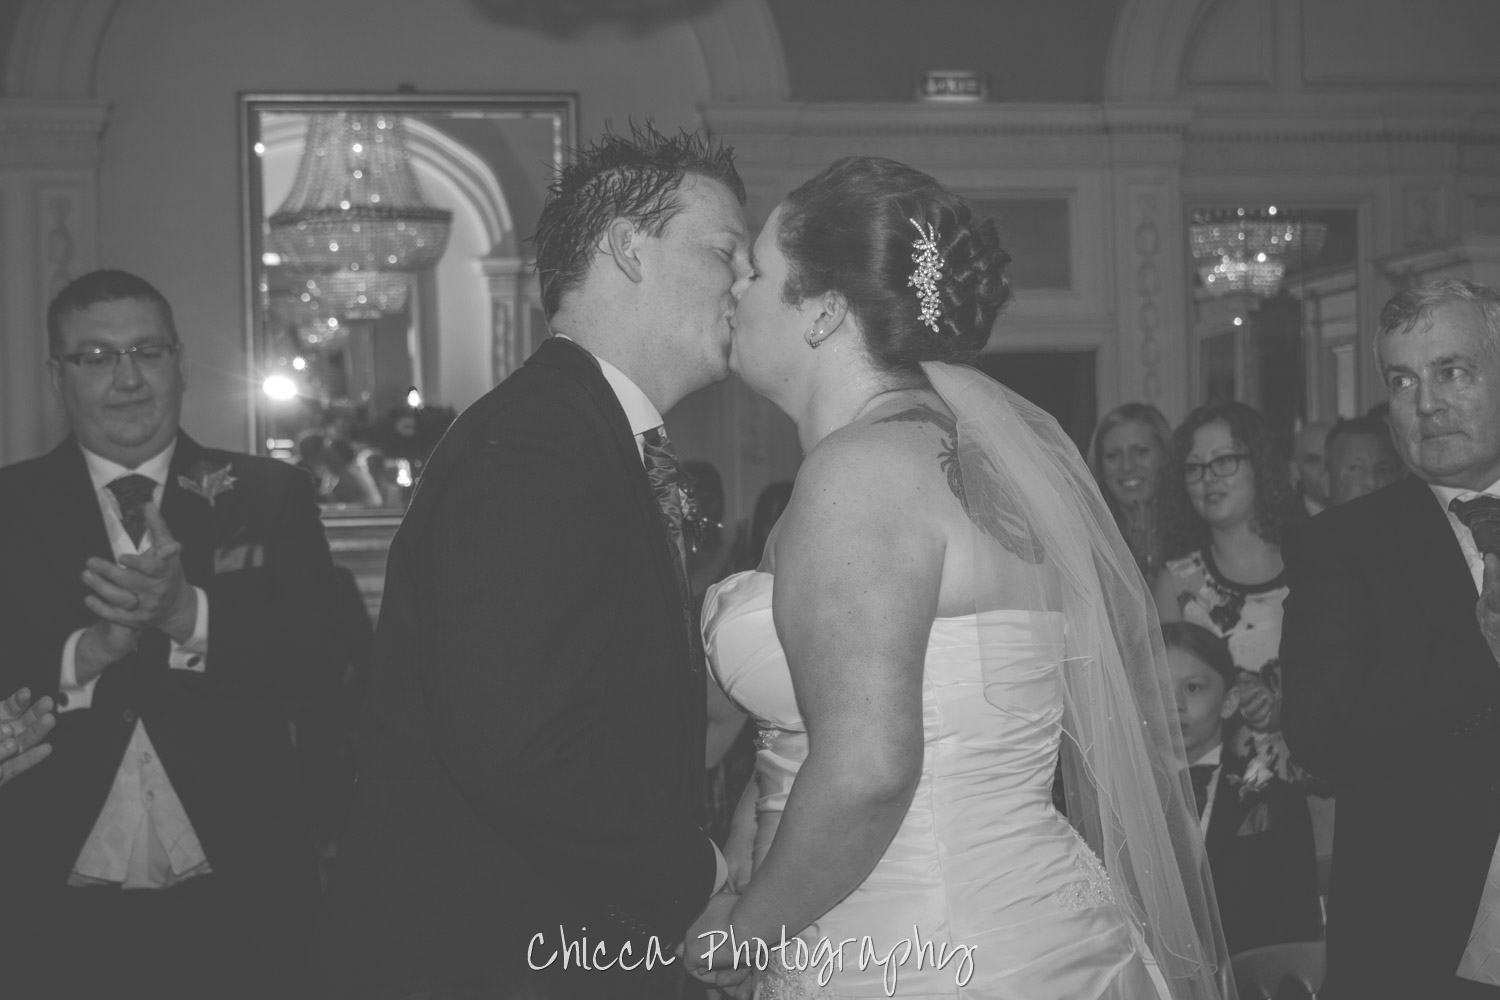 midland-hotel-bradford-wedding-photography-chicca-8.jpg